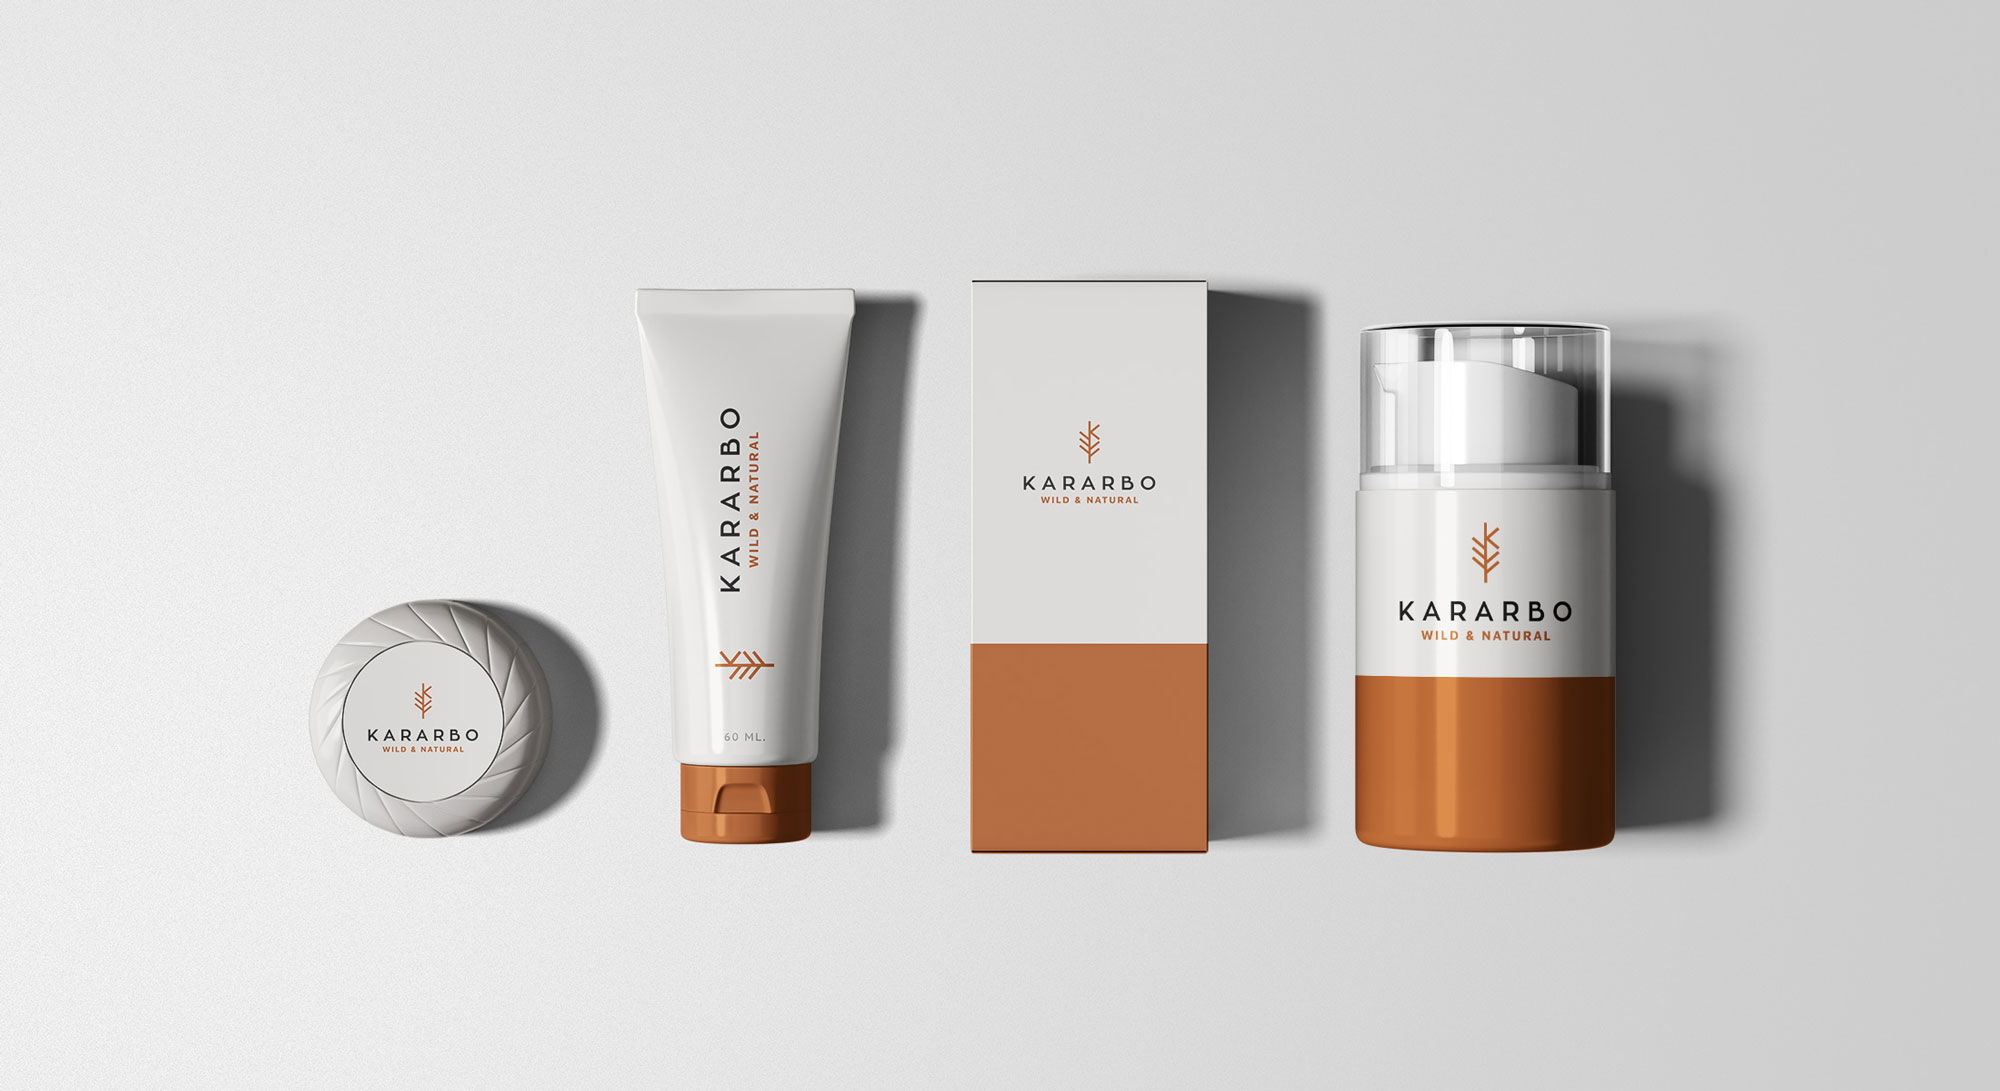 Kararbo cosmetics with branding elements